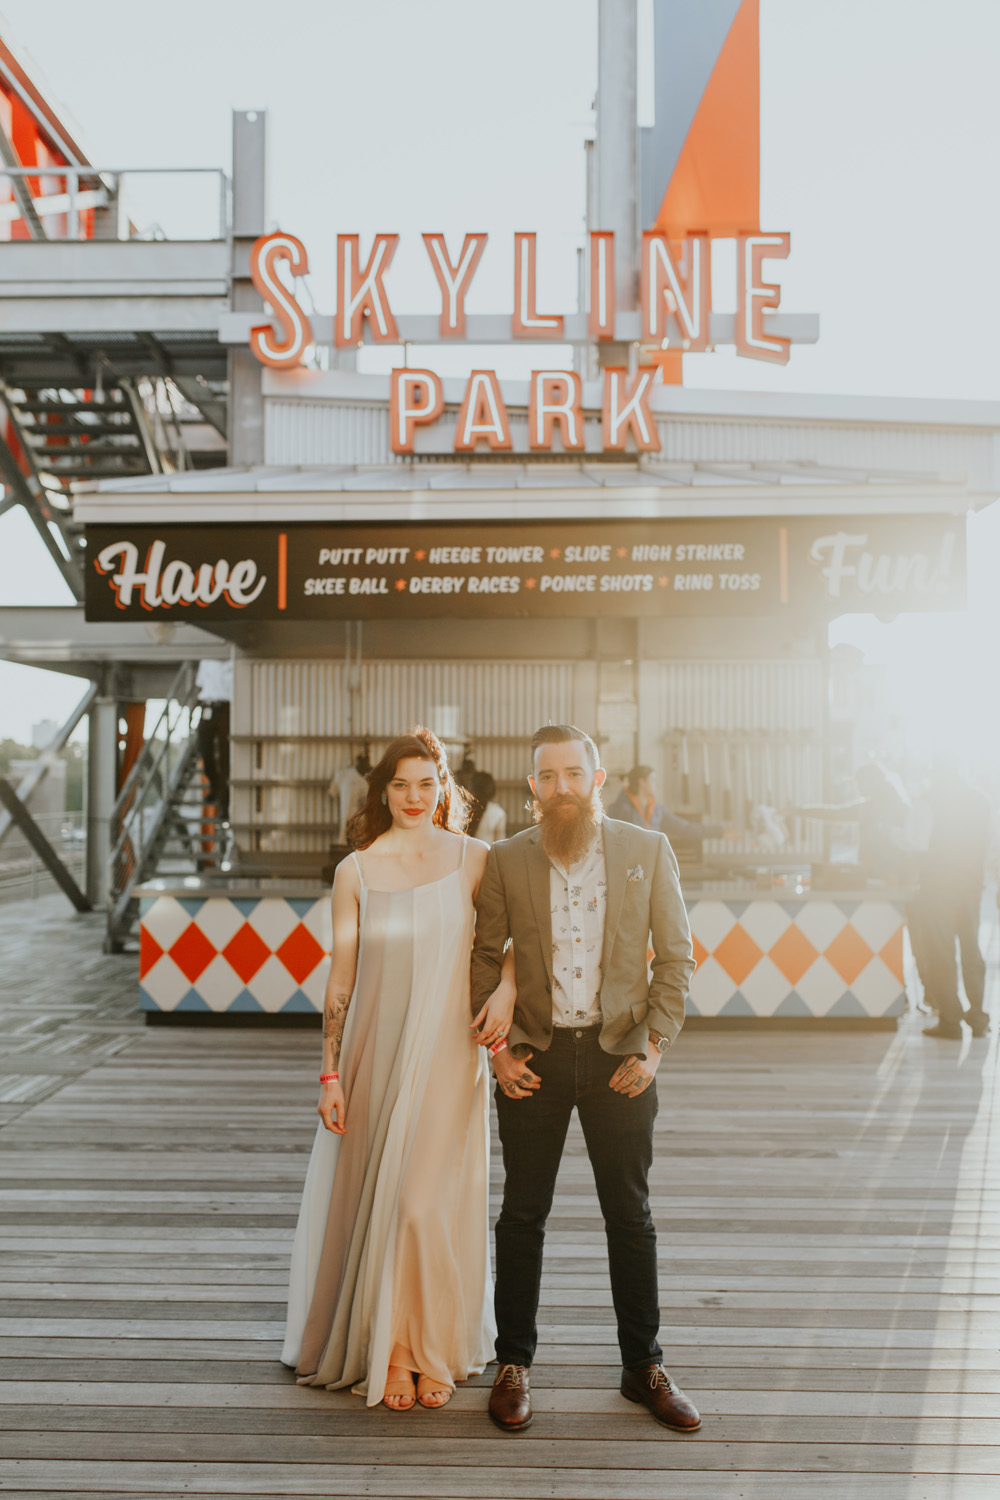 skyline park photo session atlanta wedding photographer1001.jpg